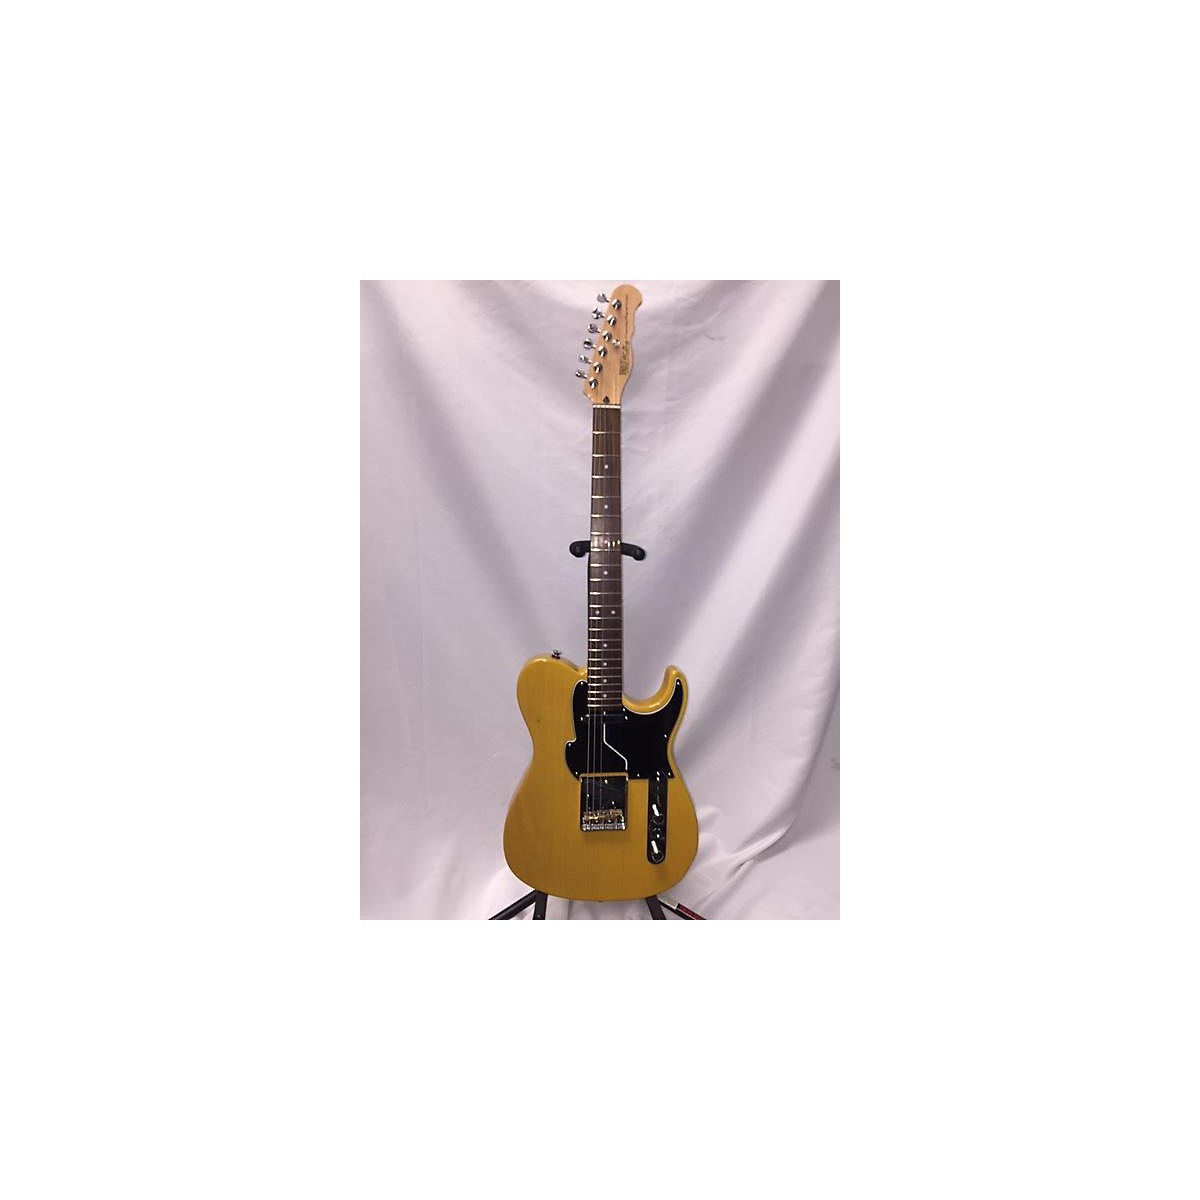 Fret-King Country Squire Fluence Solid Body Electric Guitar